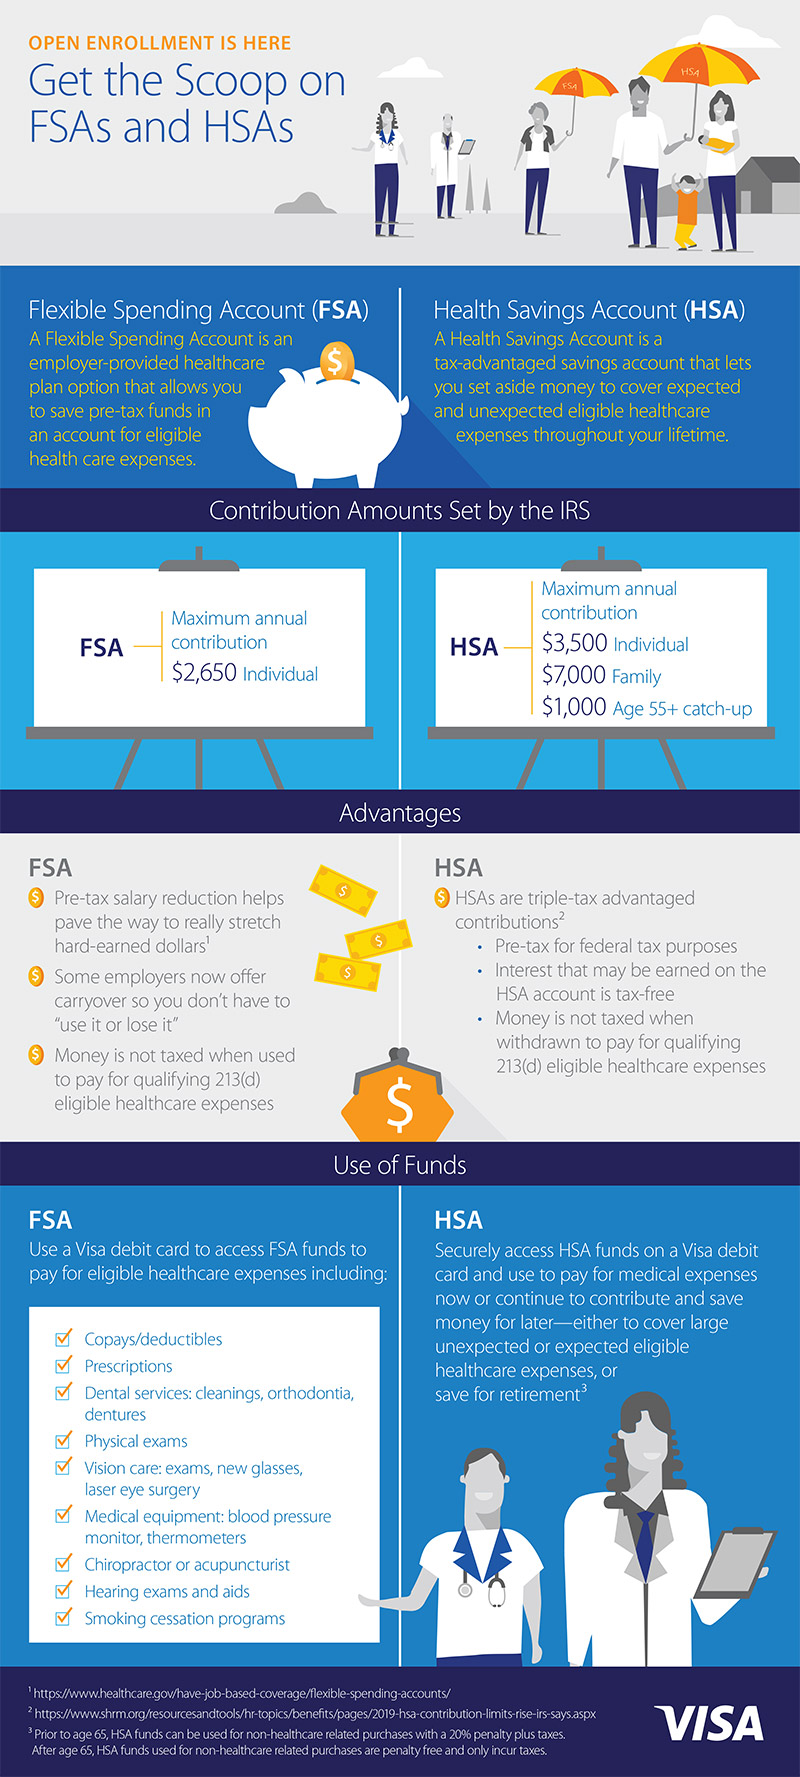 Why do consumers leave so much FSA and HSA money on the table? | Visa